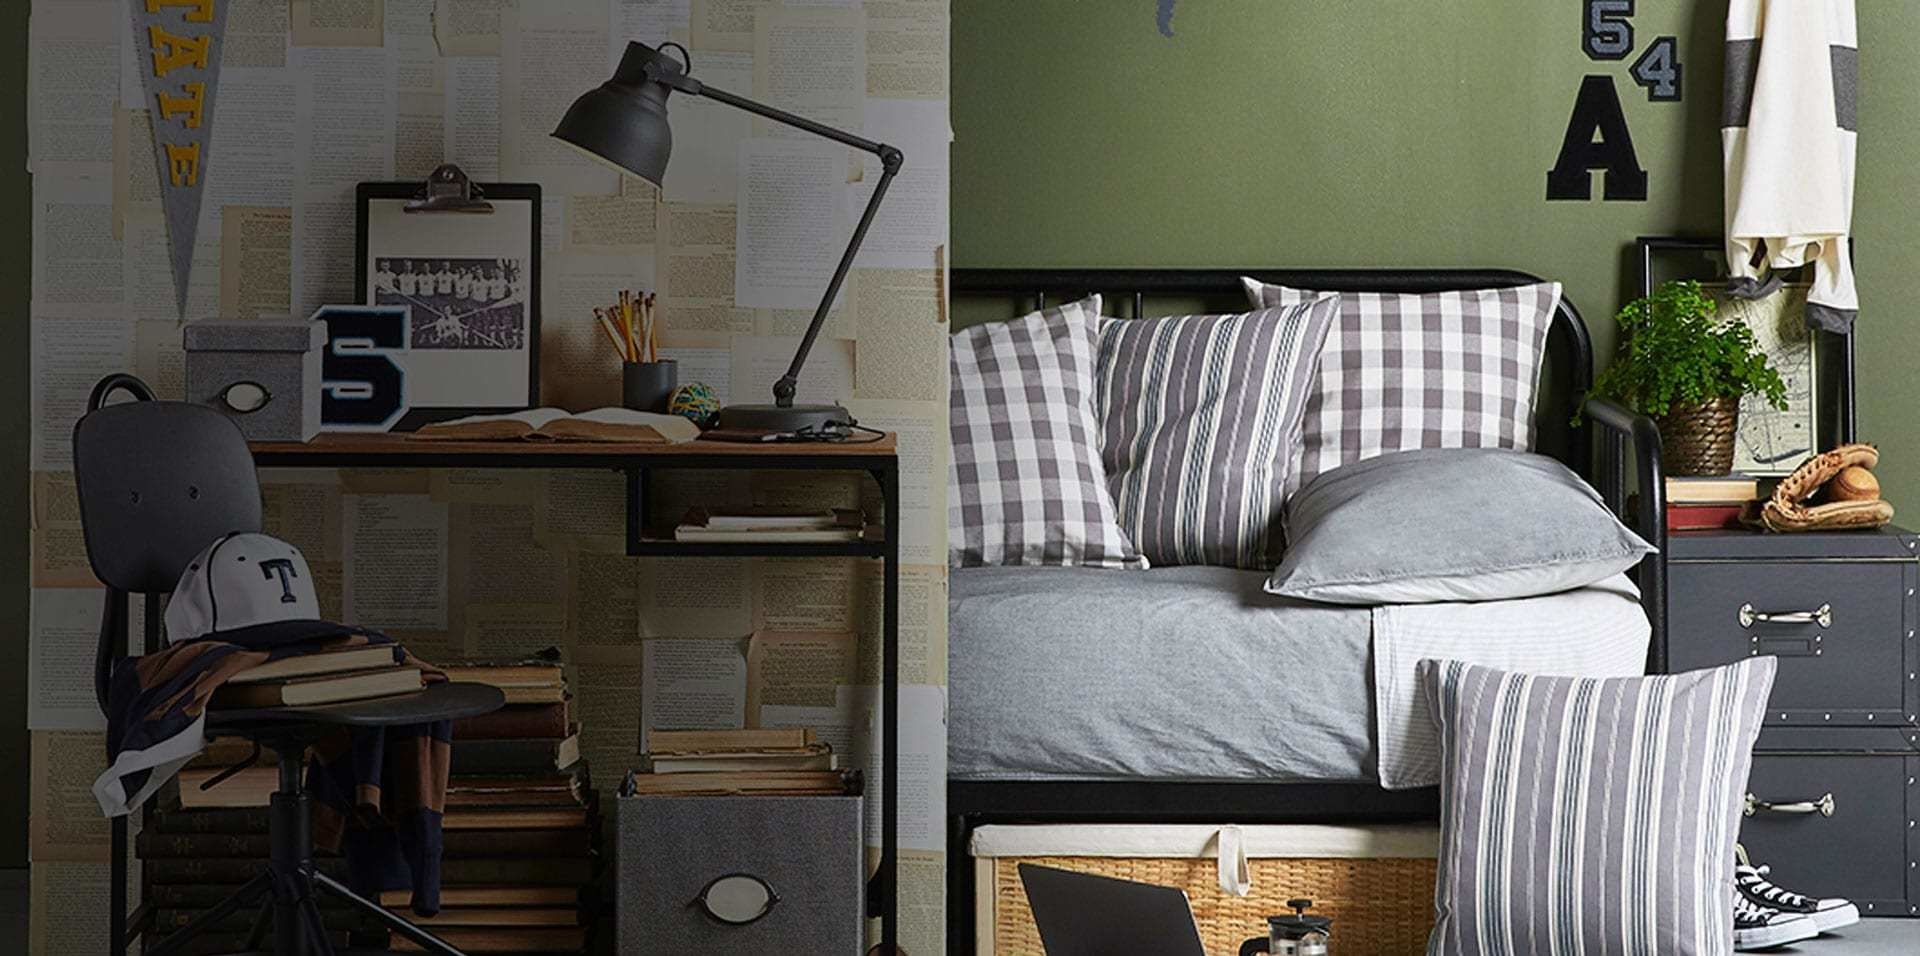 Best Back To College Dorm Room Furniture Essentials – Ikea With Pictures